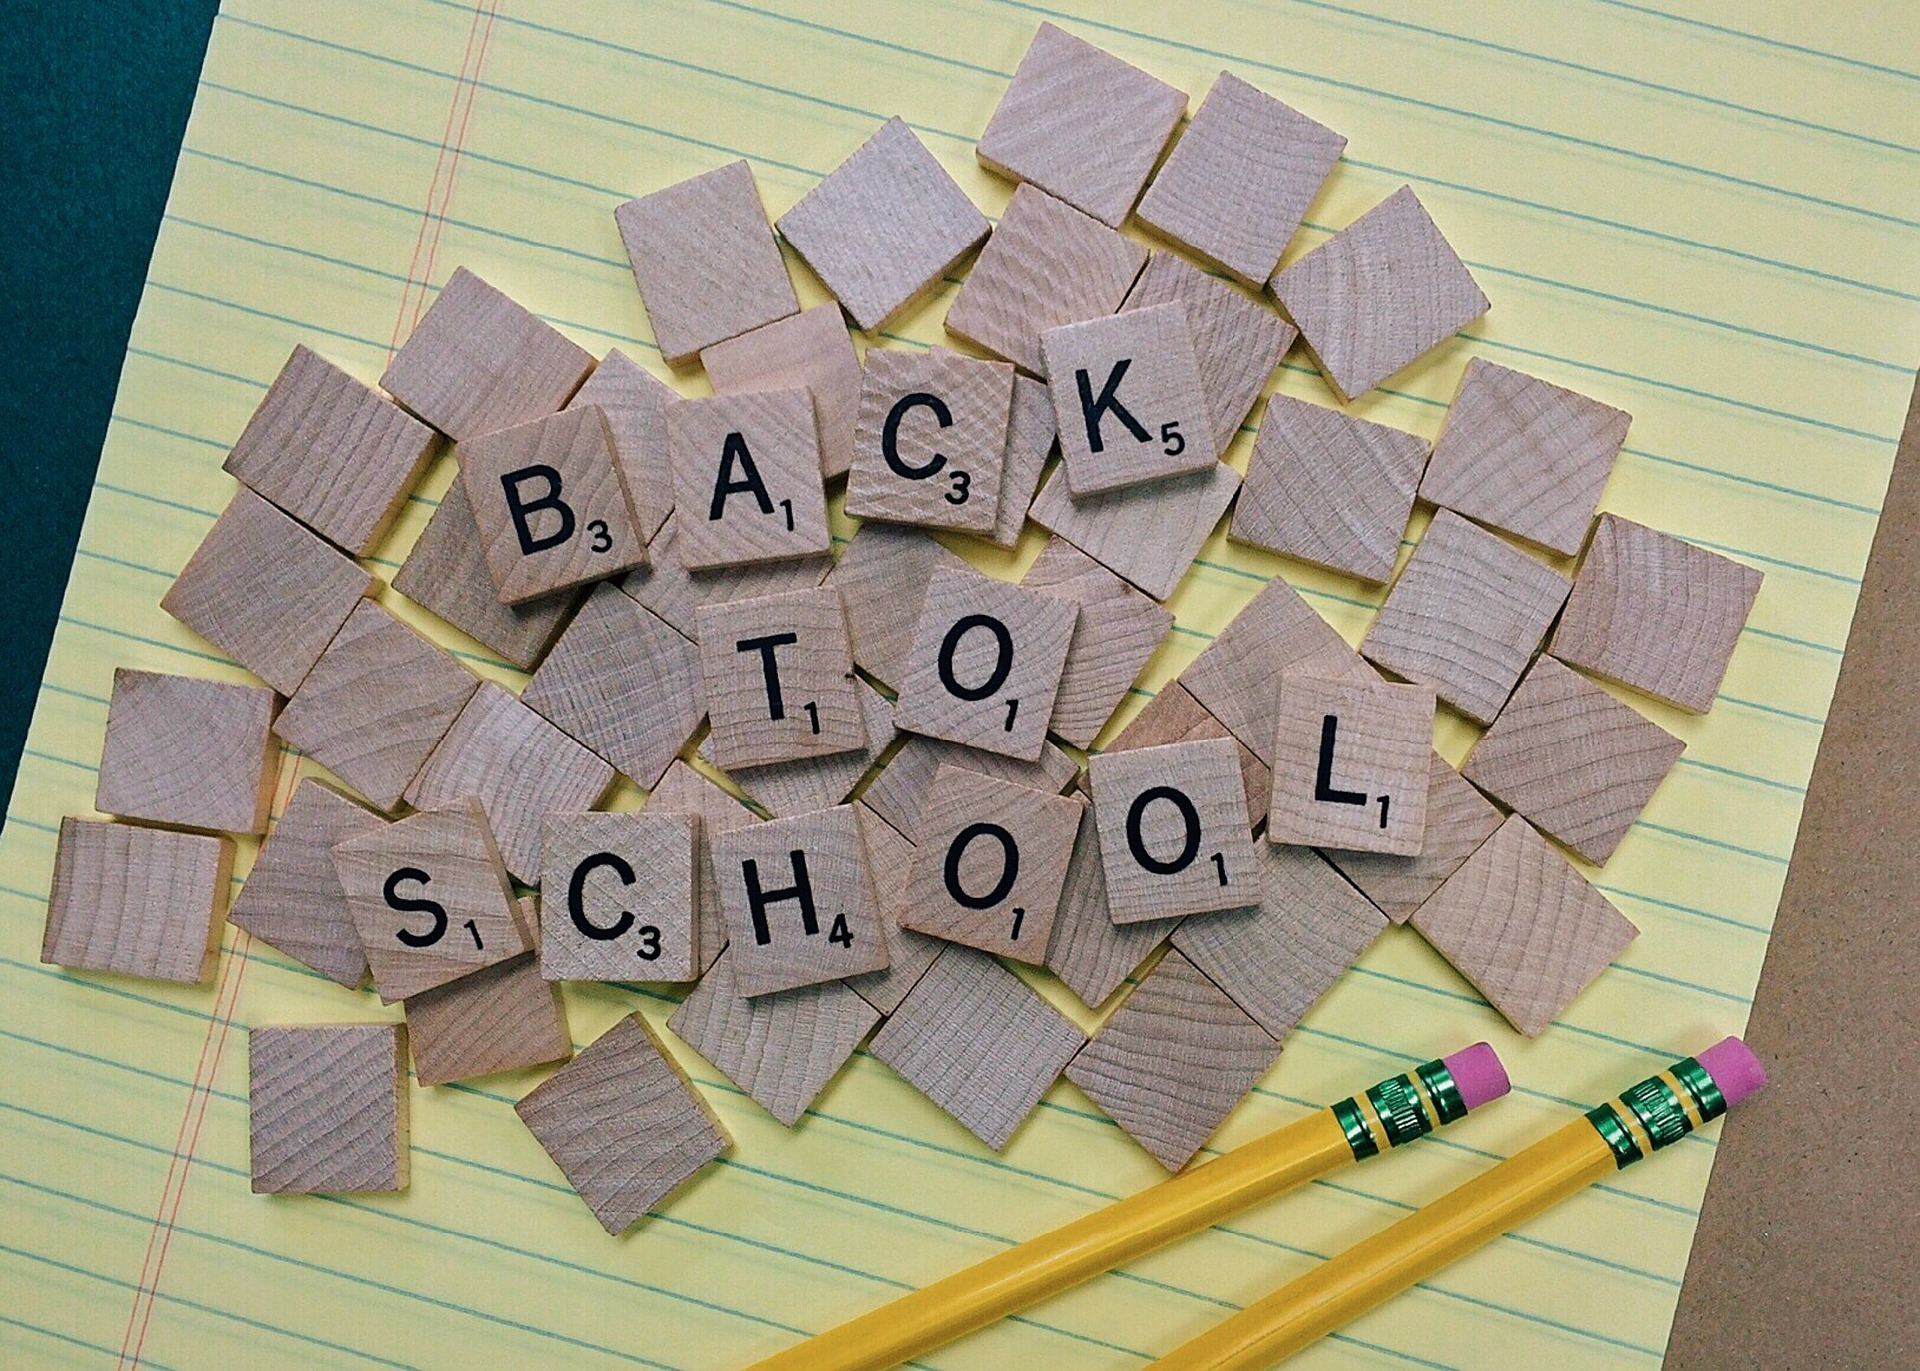 Small business marketing amsterdam printing 5 ways businesses can tap into back to school buzz fandeluxe Gallery